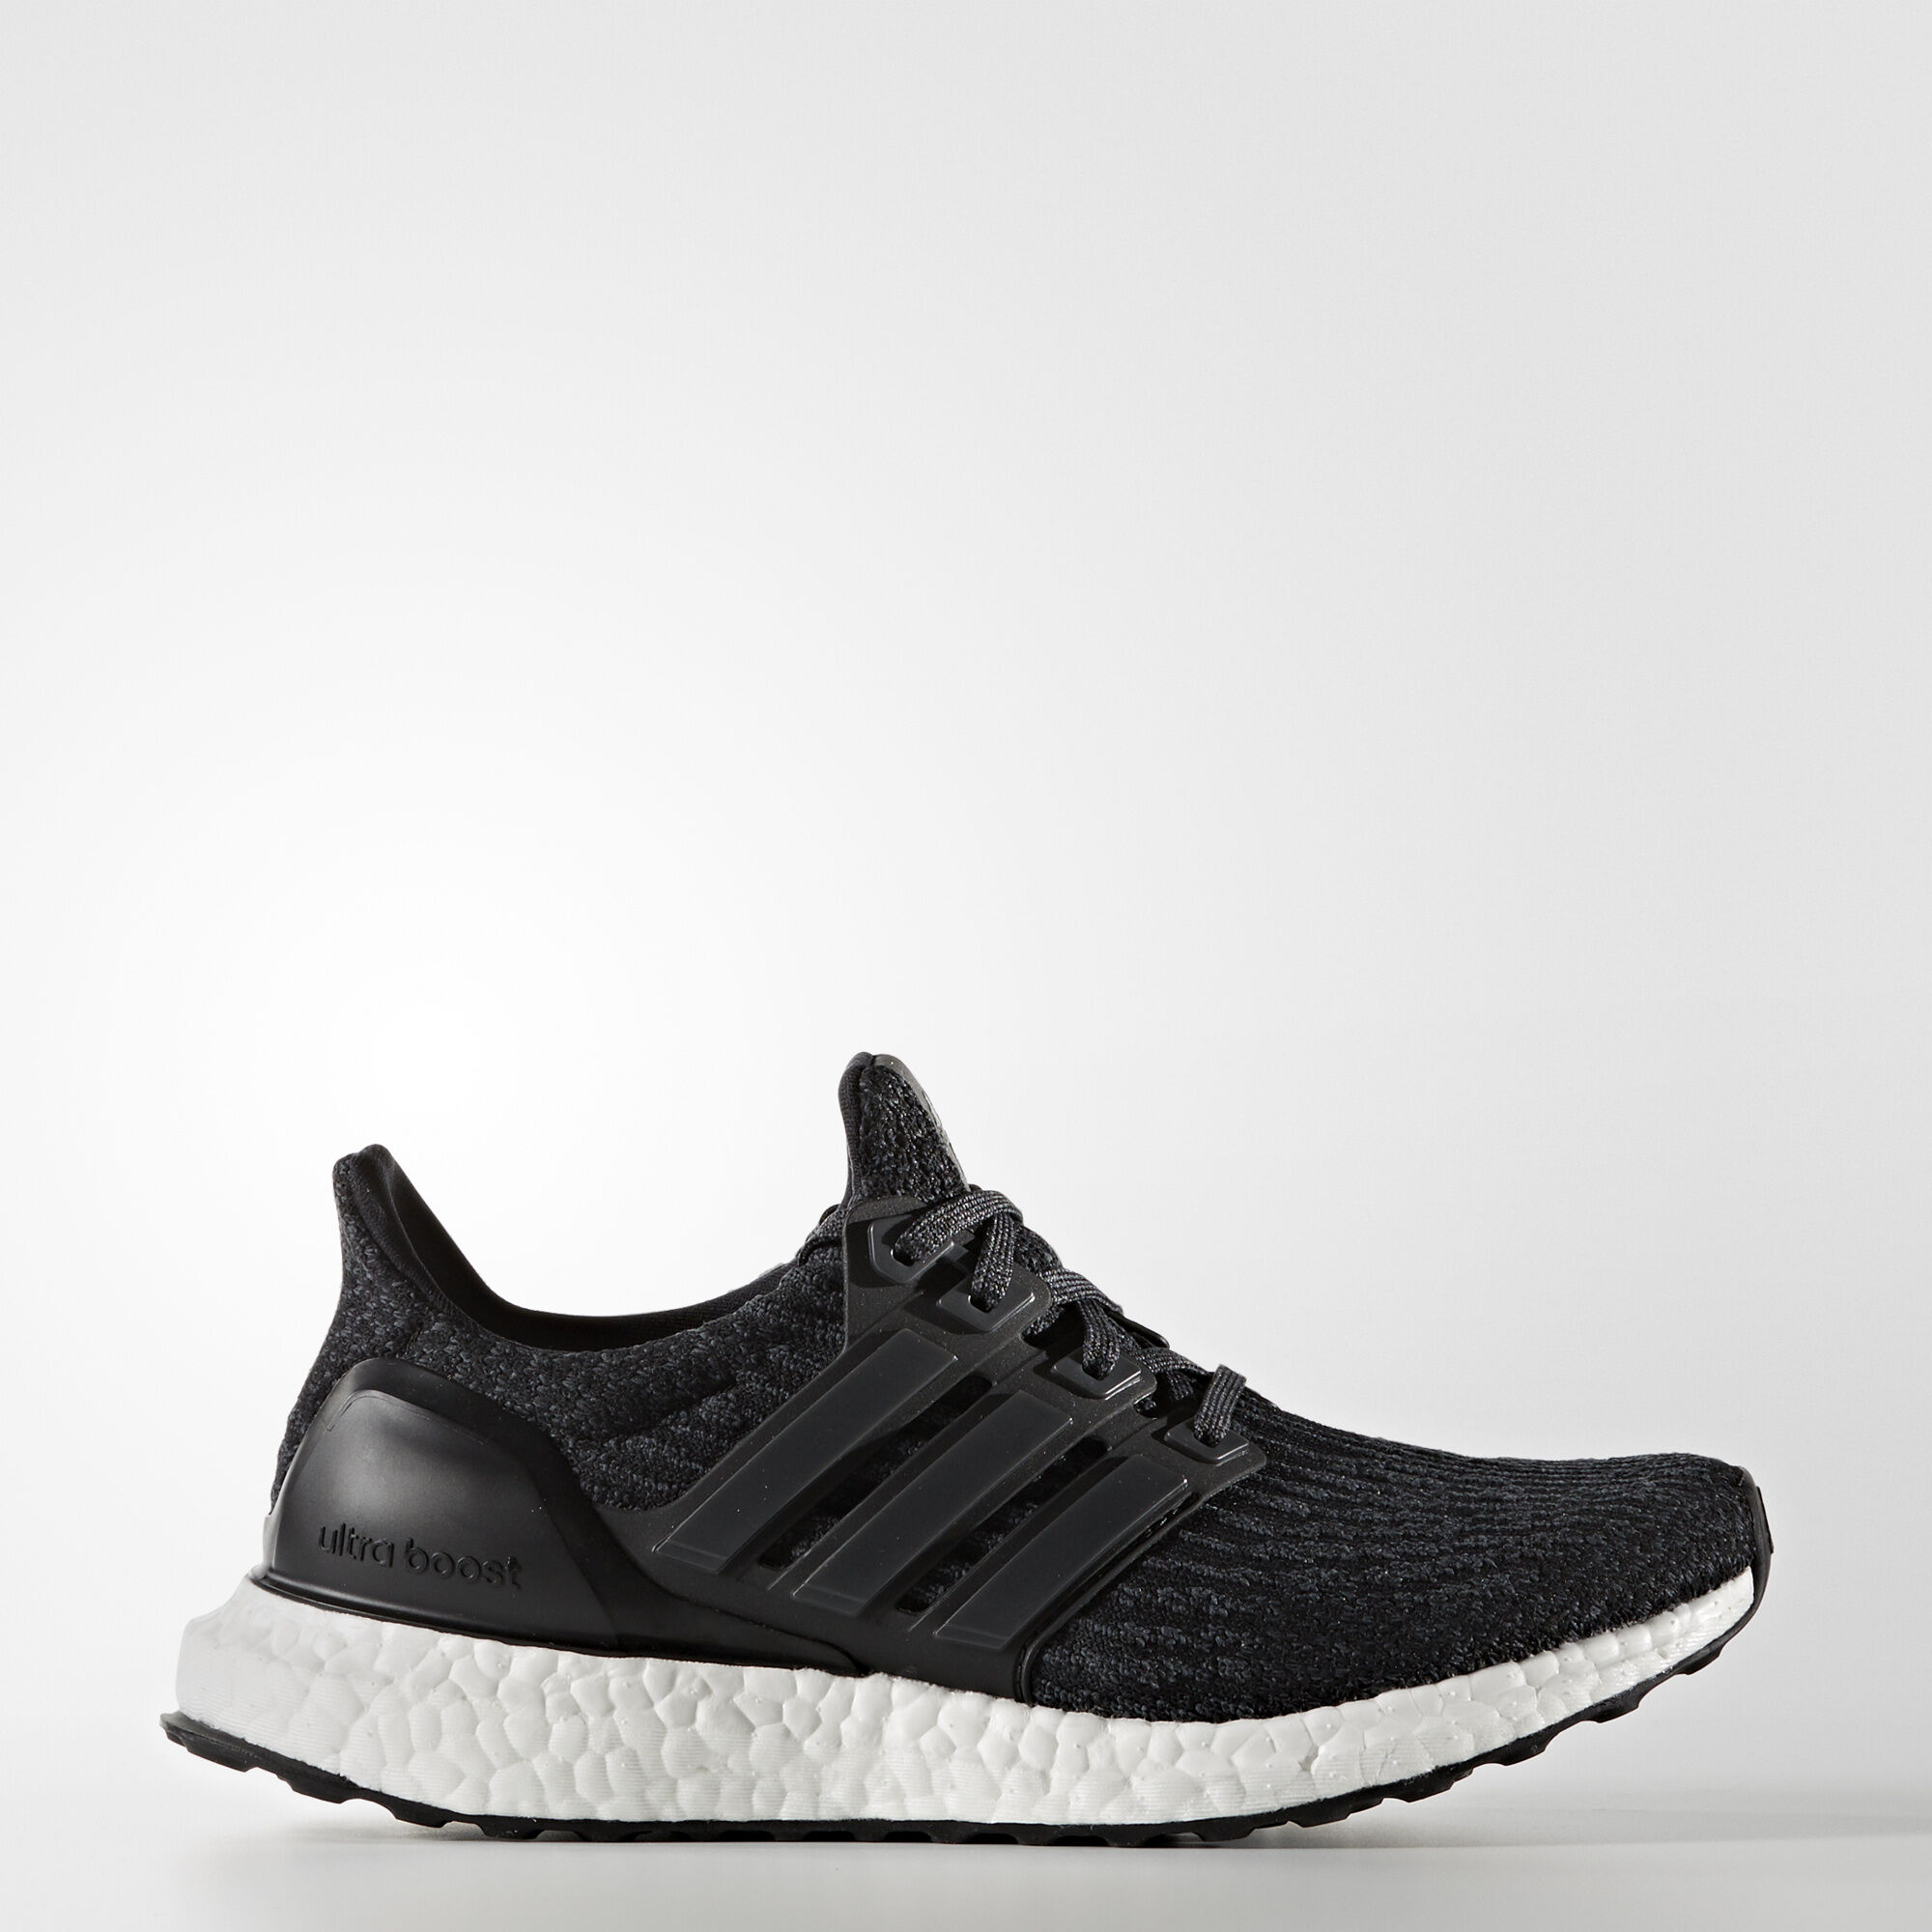 ... adidas - UltraBOOST Shoes Core Black   Black   Dark Shale S82103 Adidas  Ultra Boost White ... 088463266a